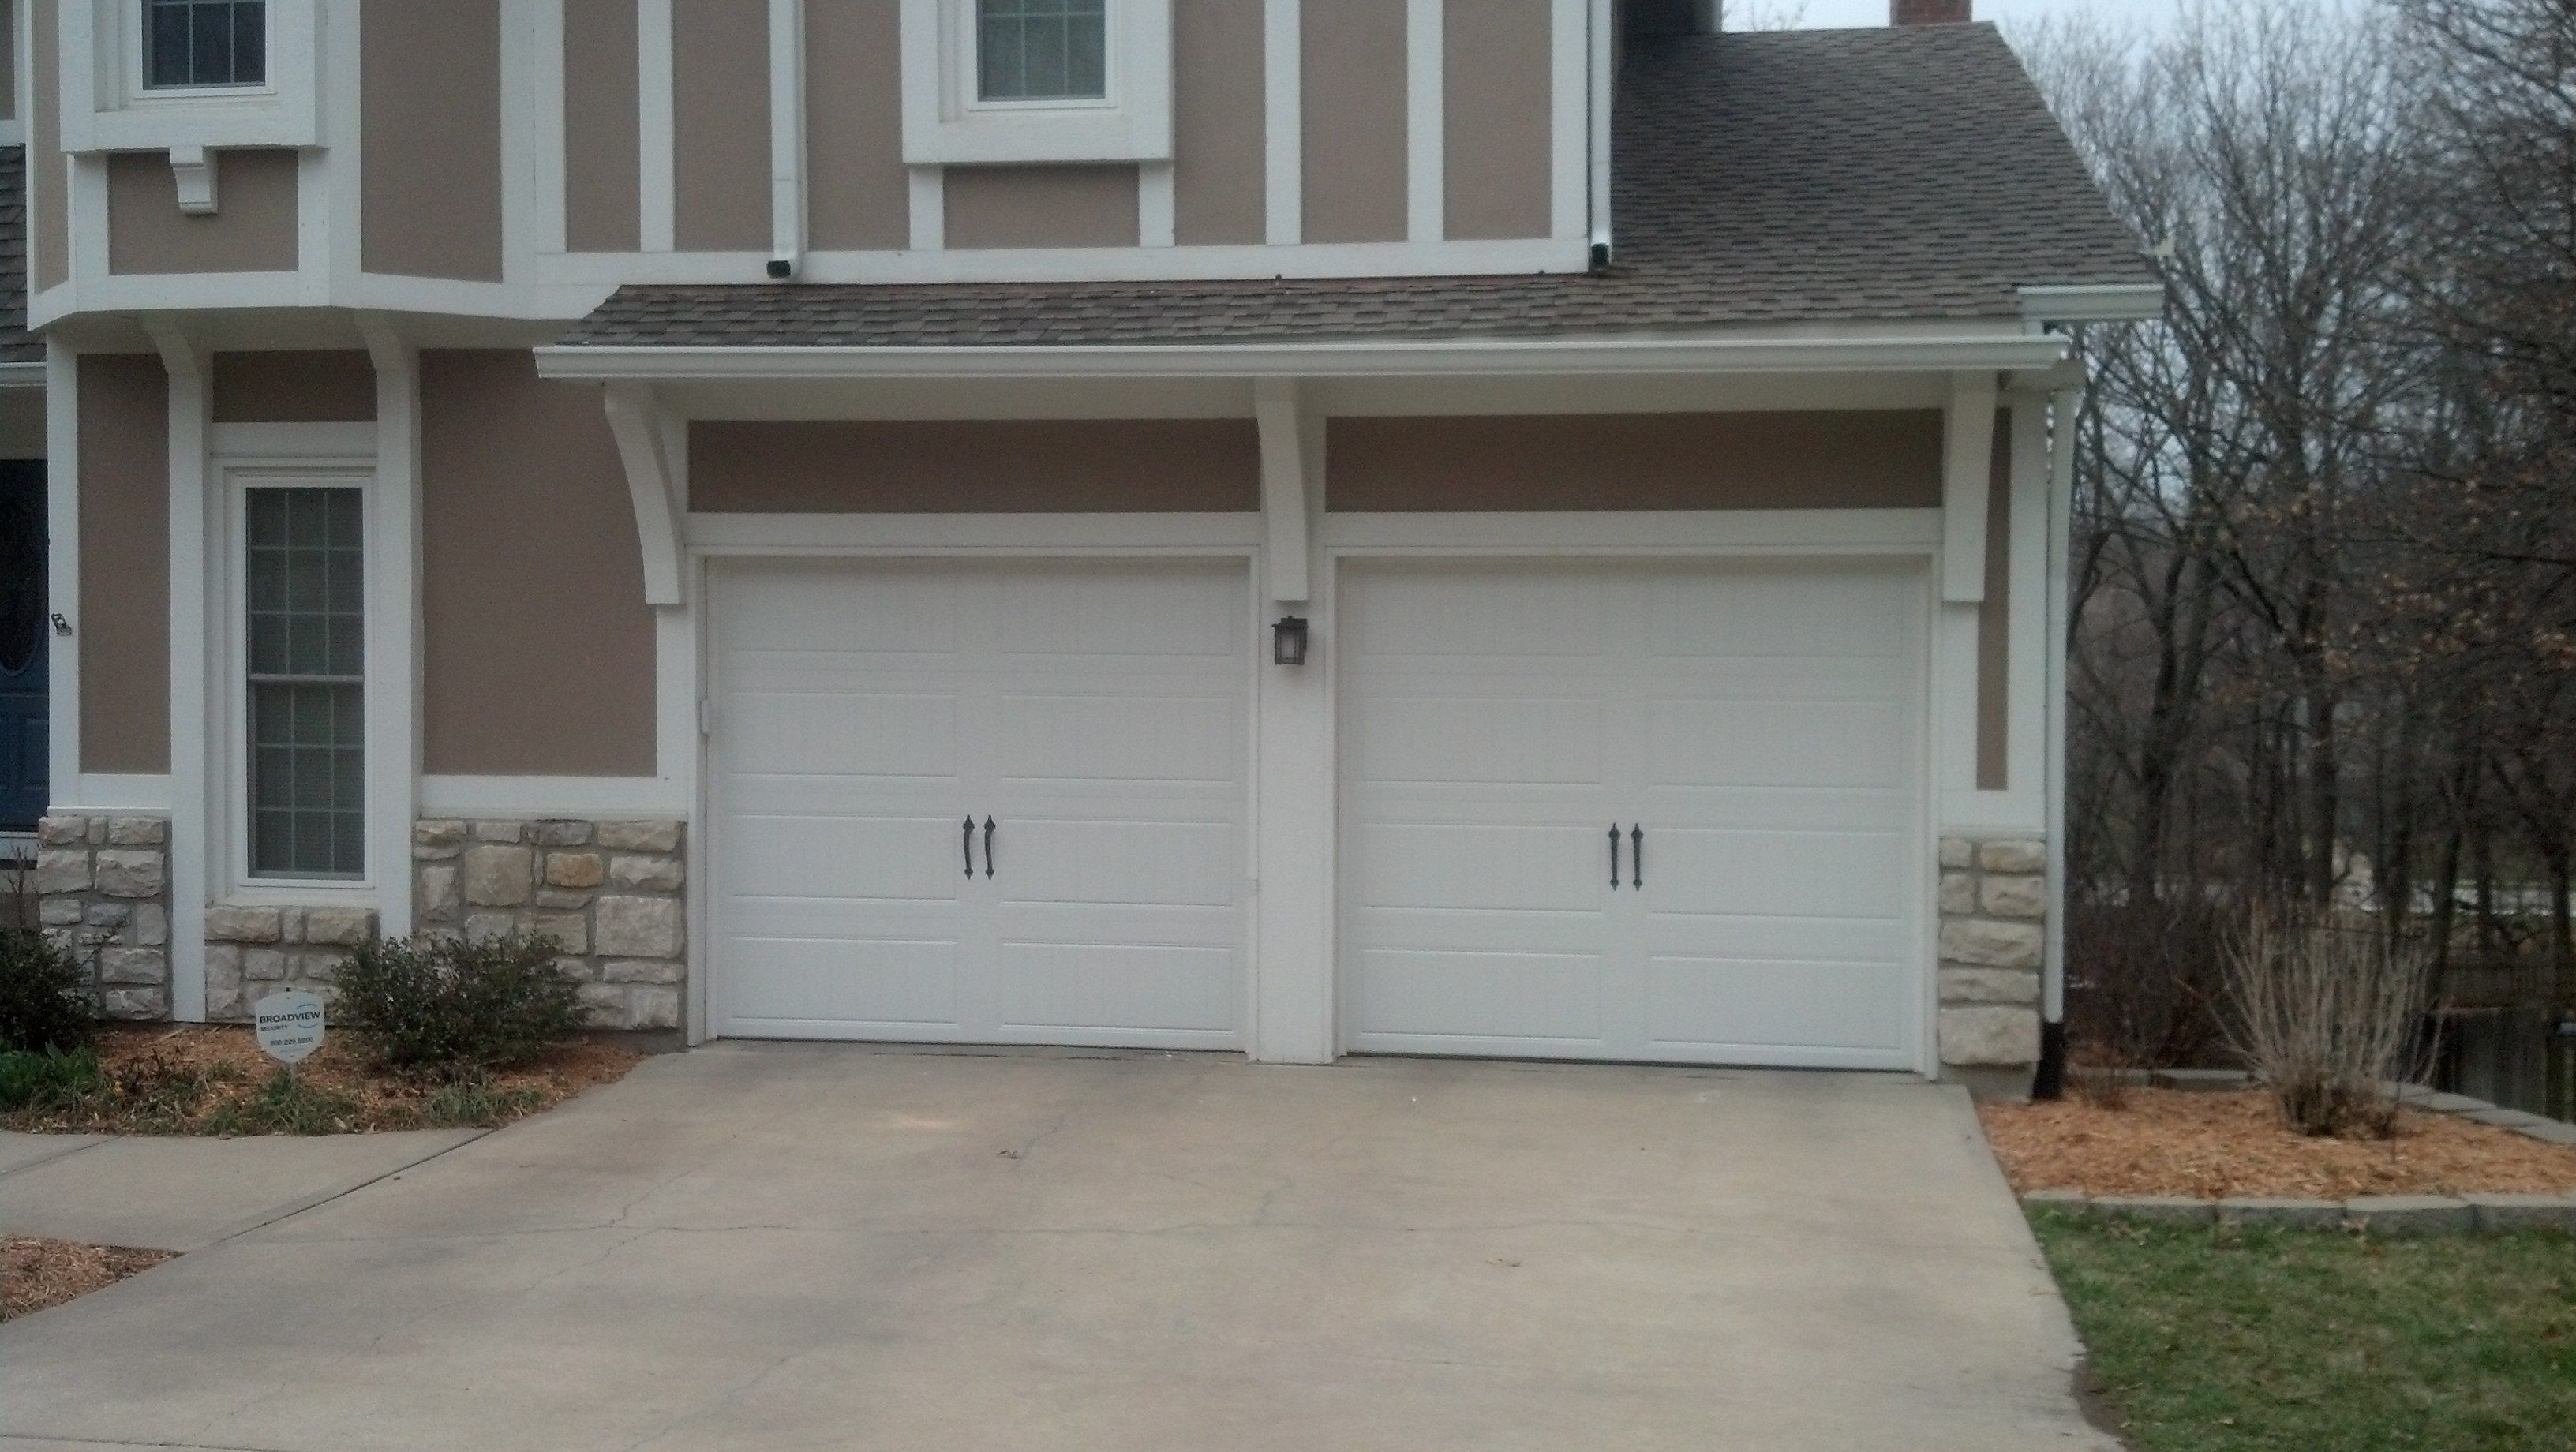 1840 #446C87  Steel Insulated Garage Doors Installed By Royal Garage Door  picture/photo Steel Insulated Exterior Doors 40693264